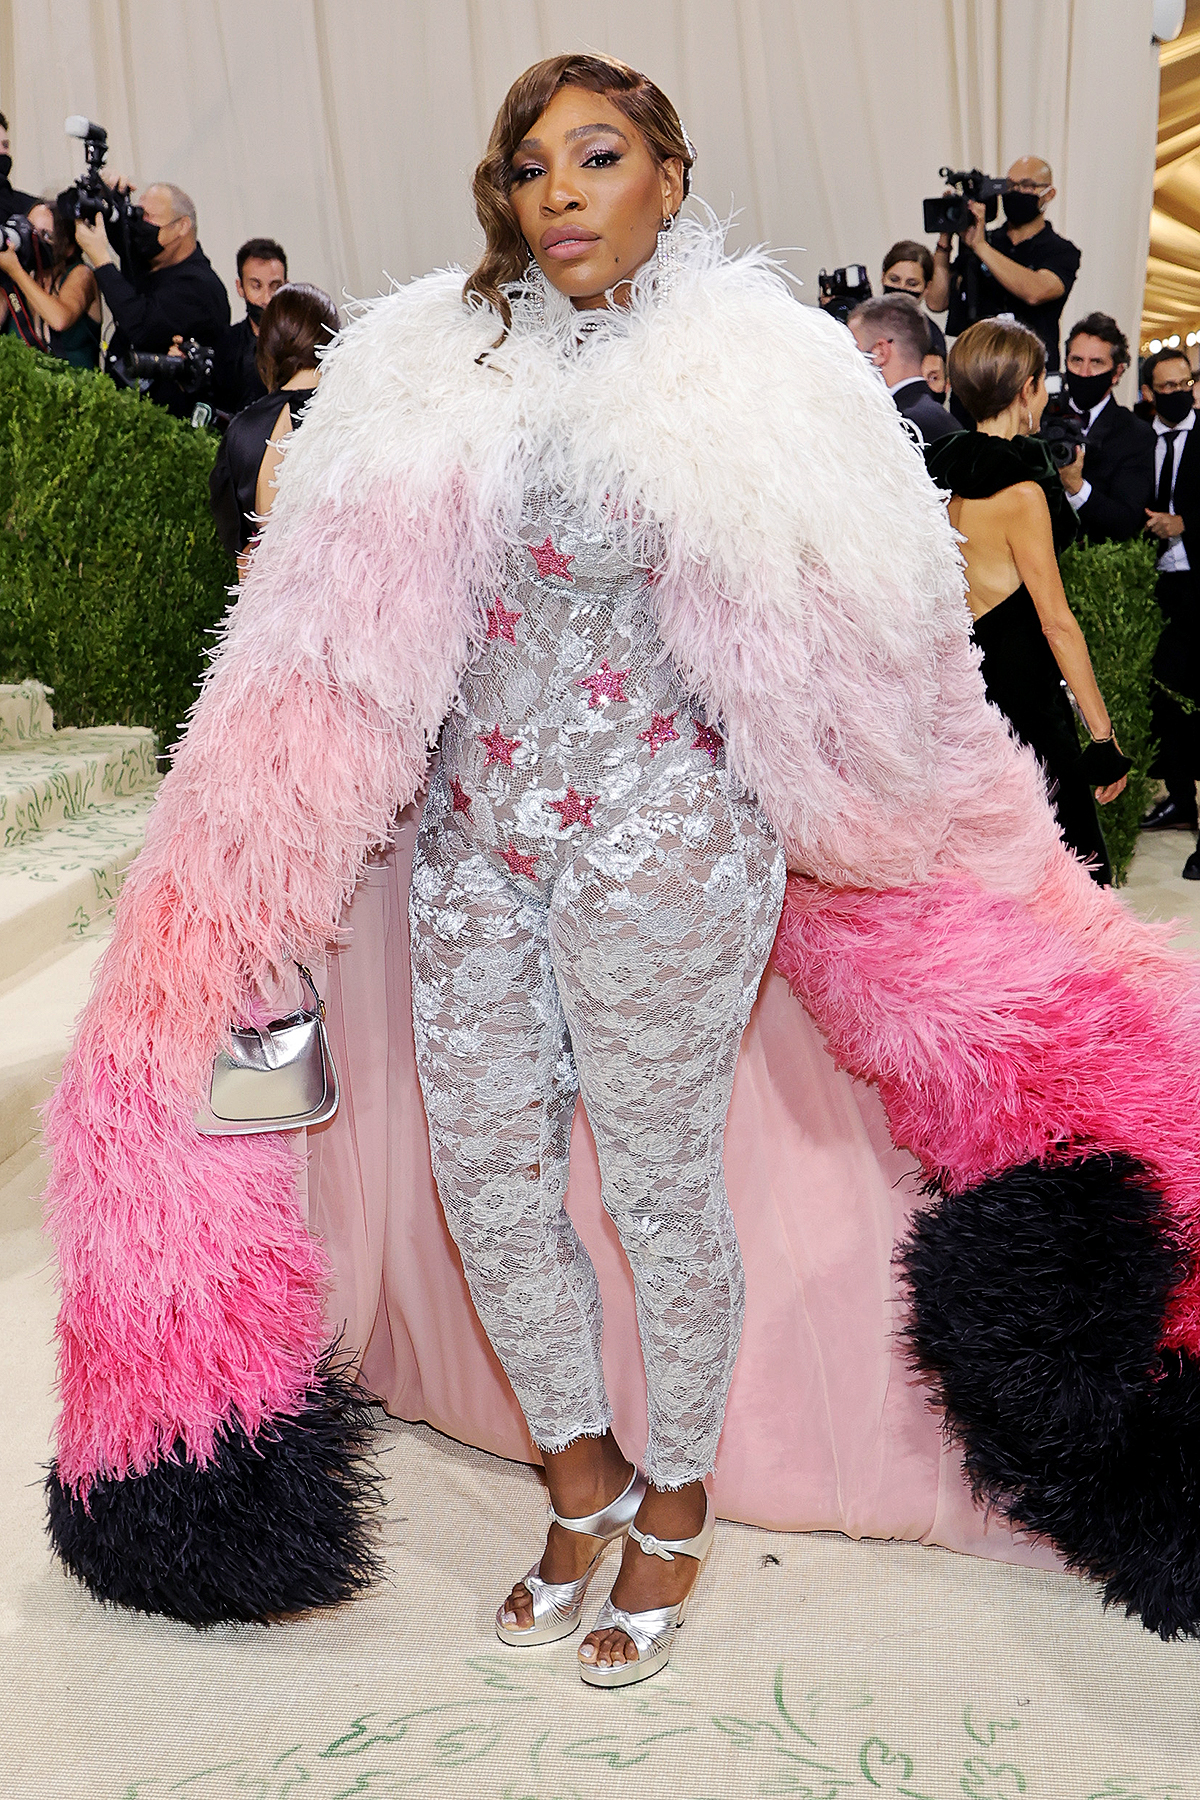 Serena Williams attends The 2021 Met Gala Celebrating In America: A Lexicon Of Fashion at Metropolitan Museum of Art on September 13, 2021 in New York City.